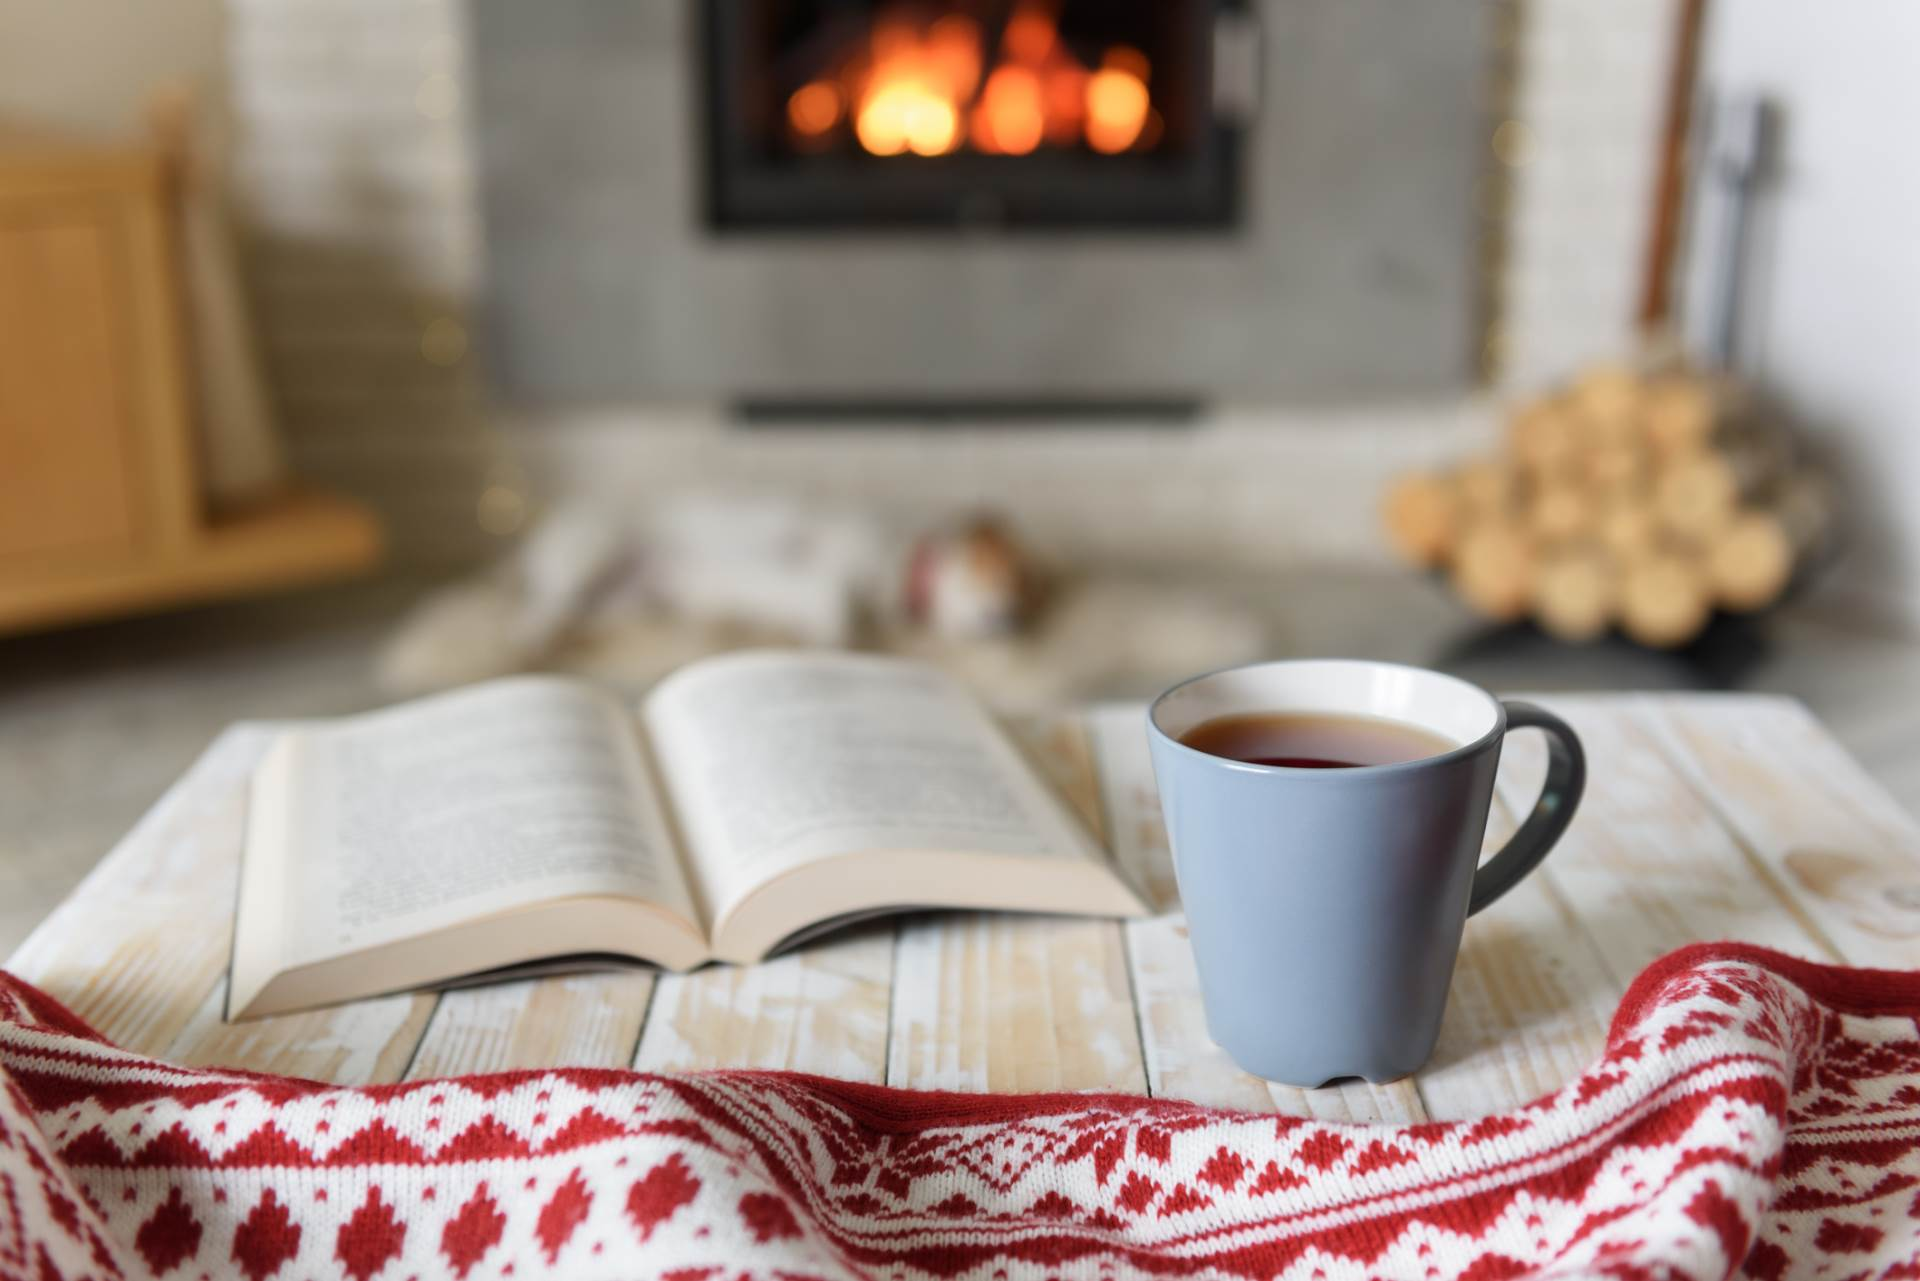 Book and cup of tea near burning fireplace. Hygge concept